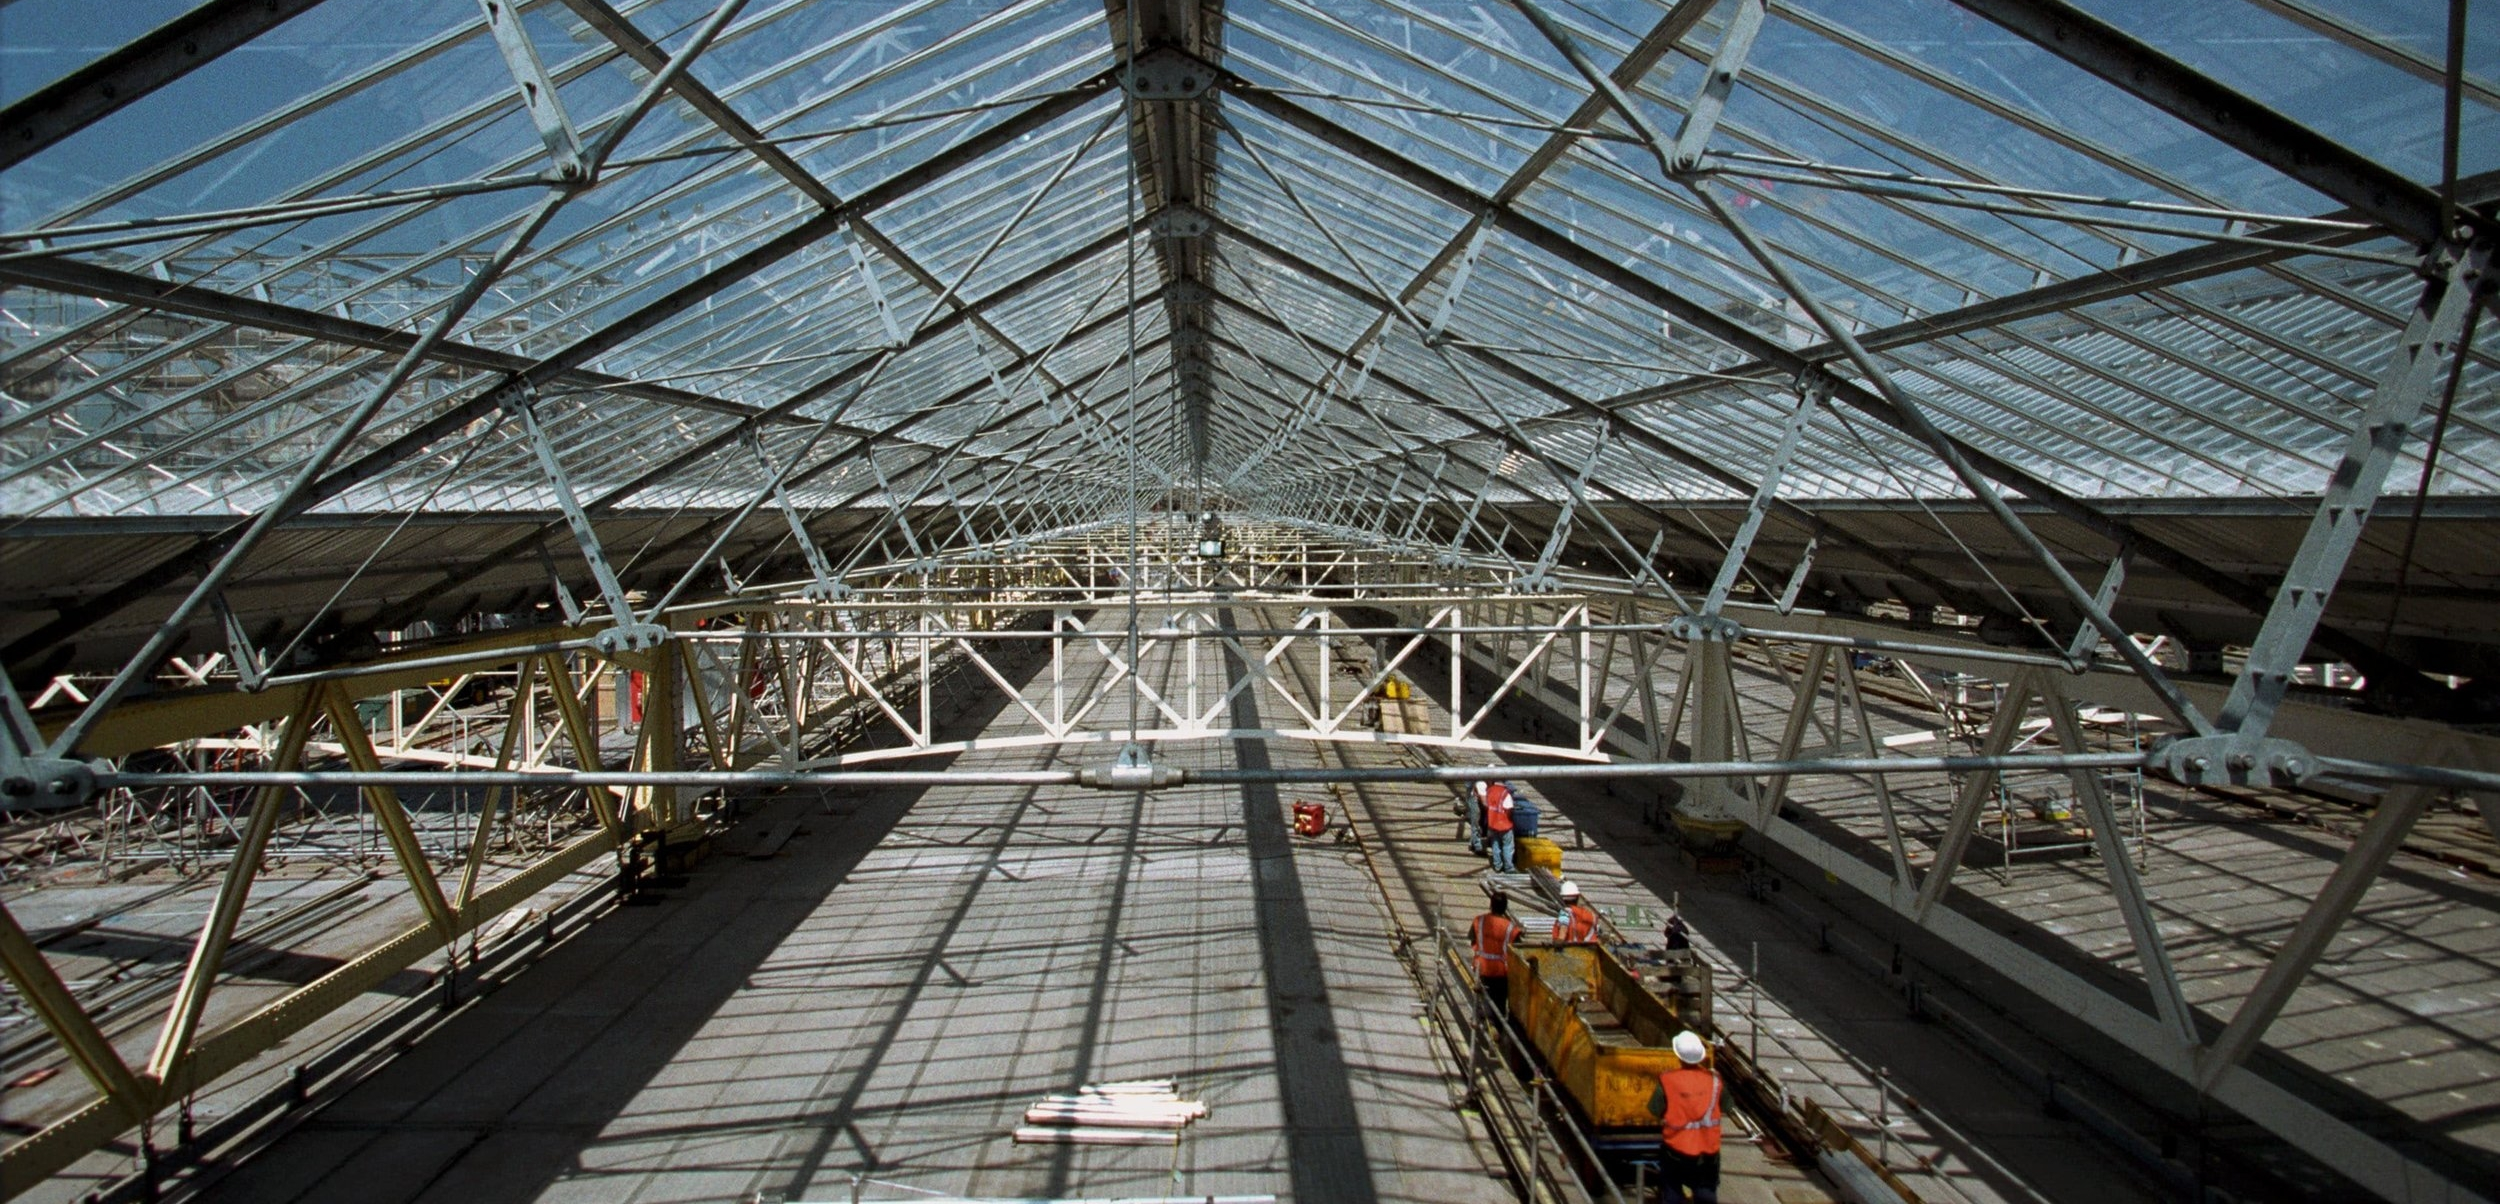 On top of the temporary scaffolding deck at Waterloo Station